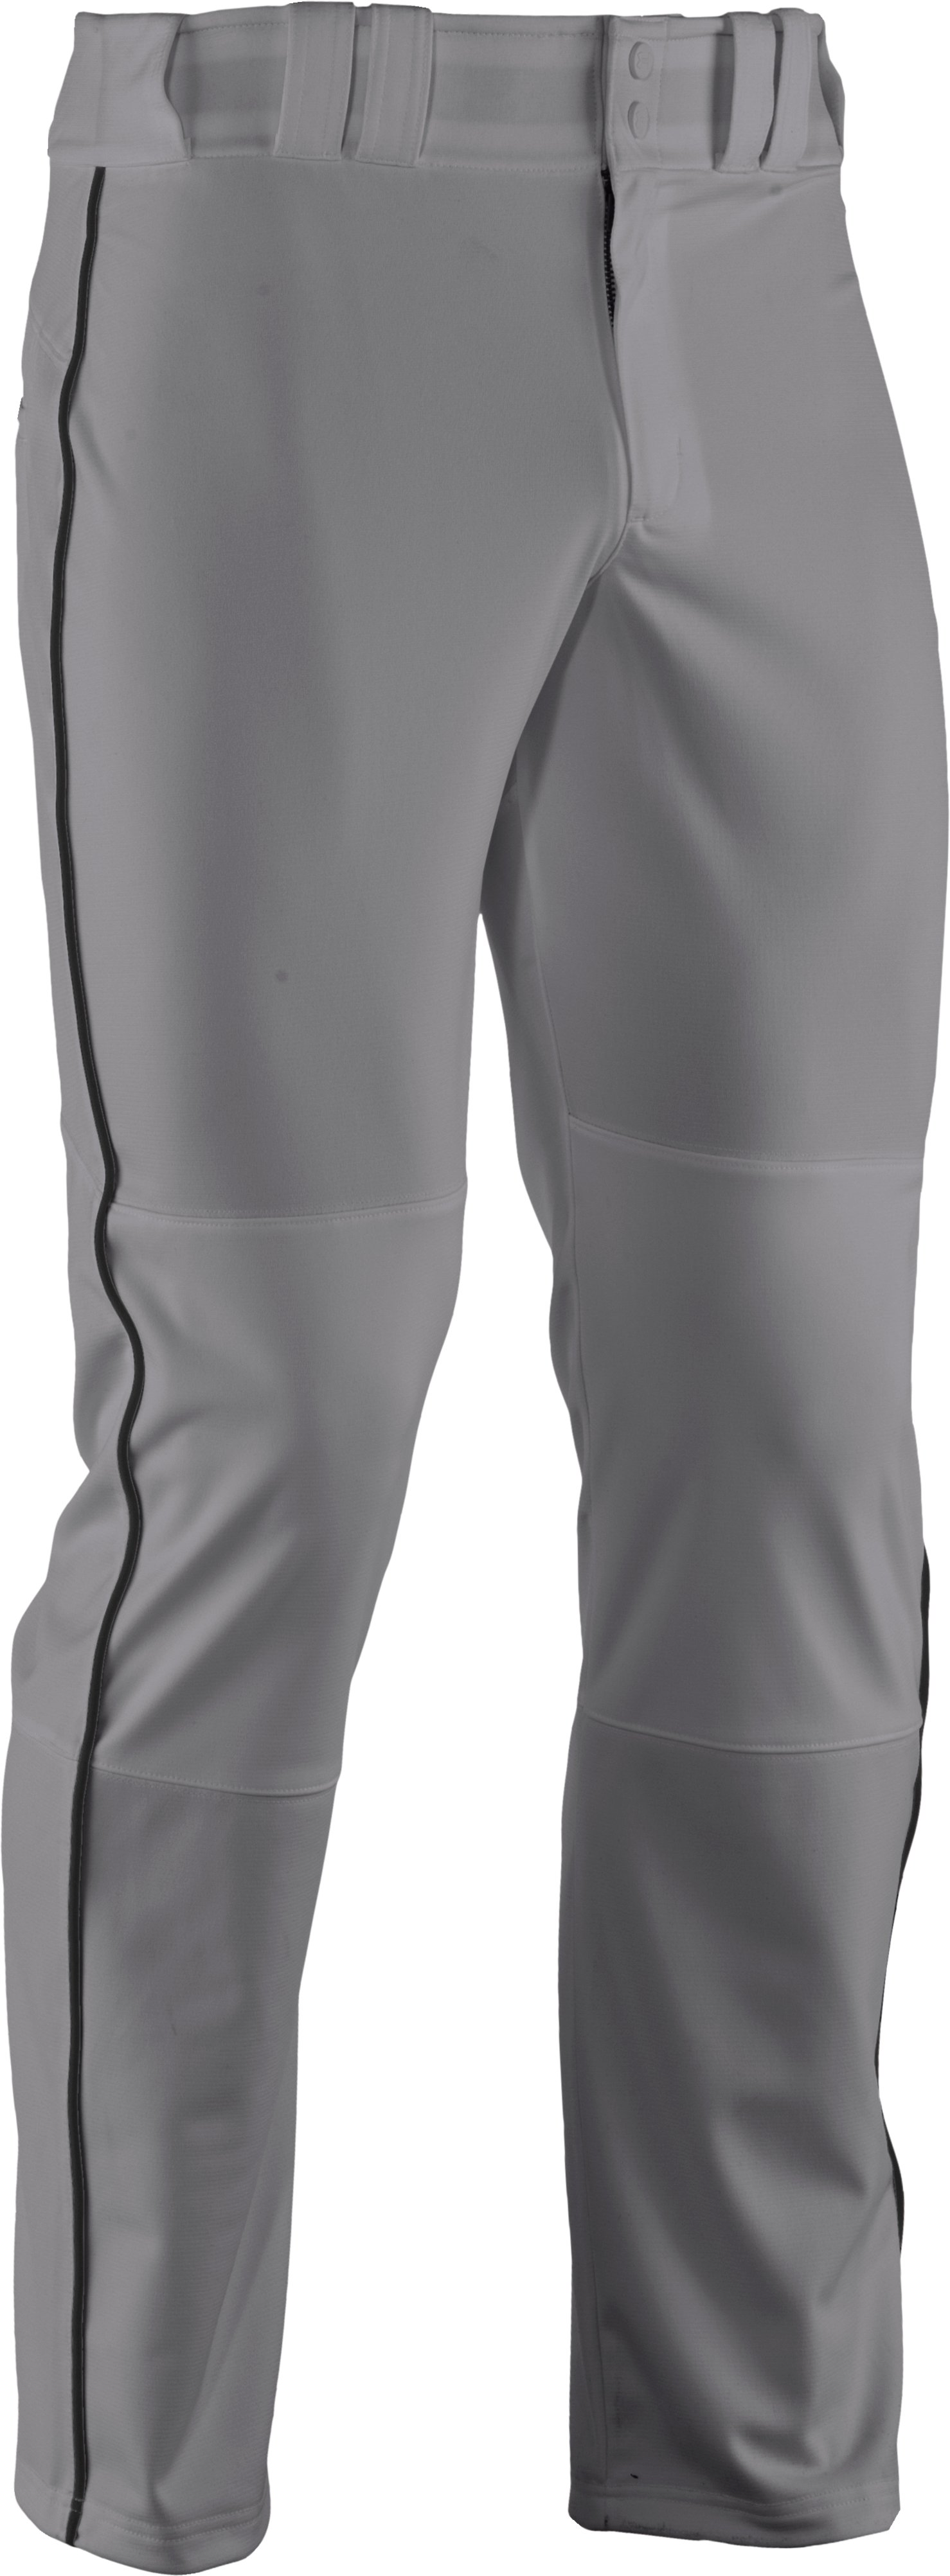 Men's UA Leadoff Piped Baseball Pants, Baseball Gray